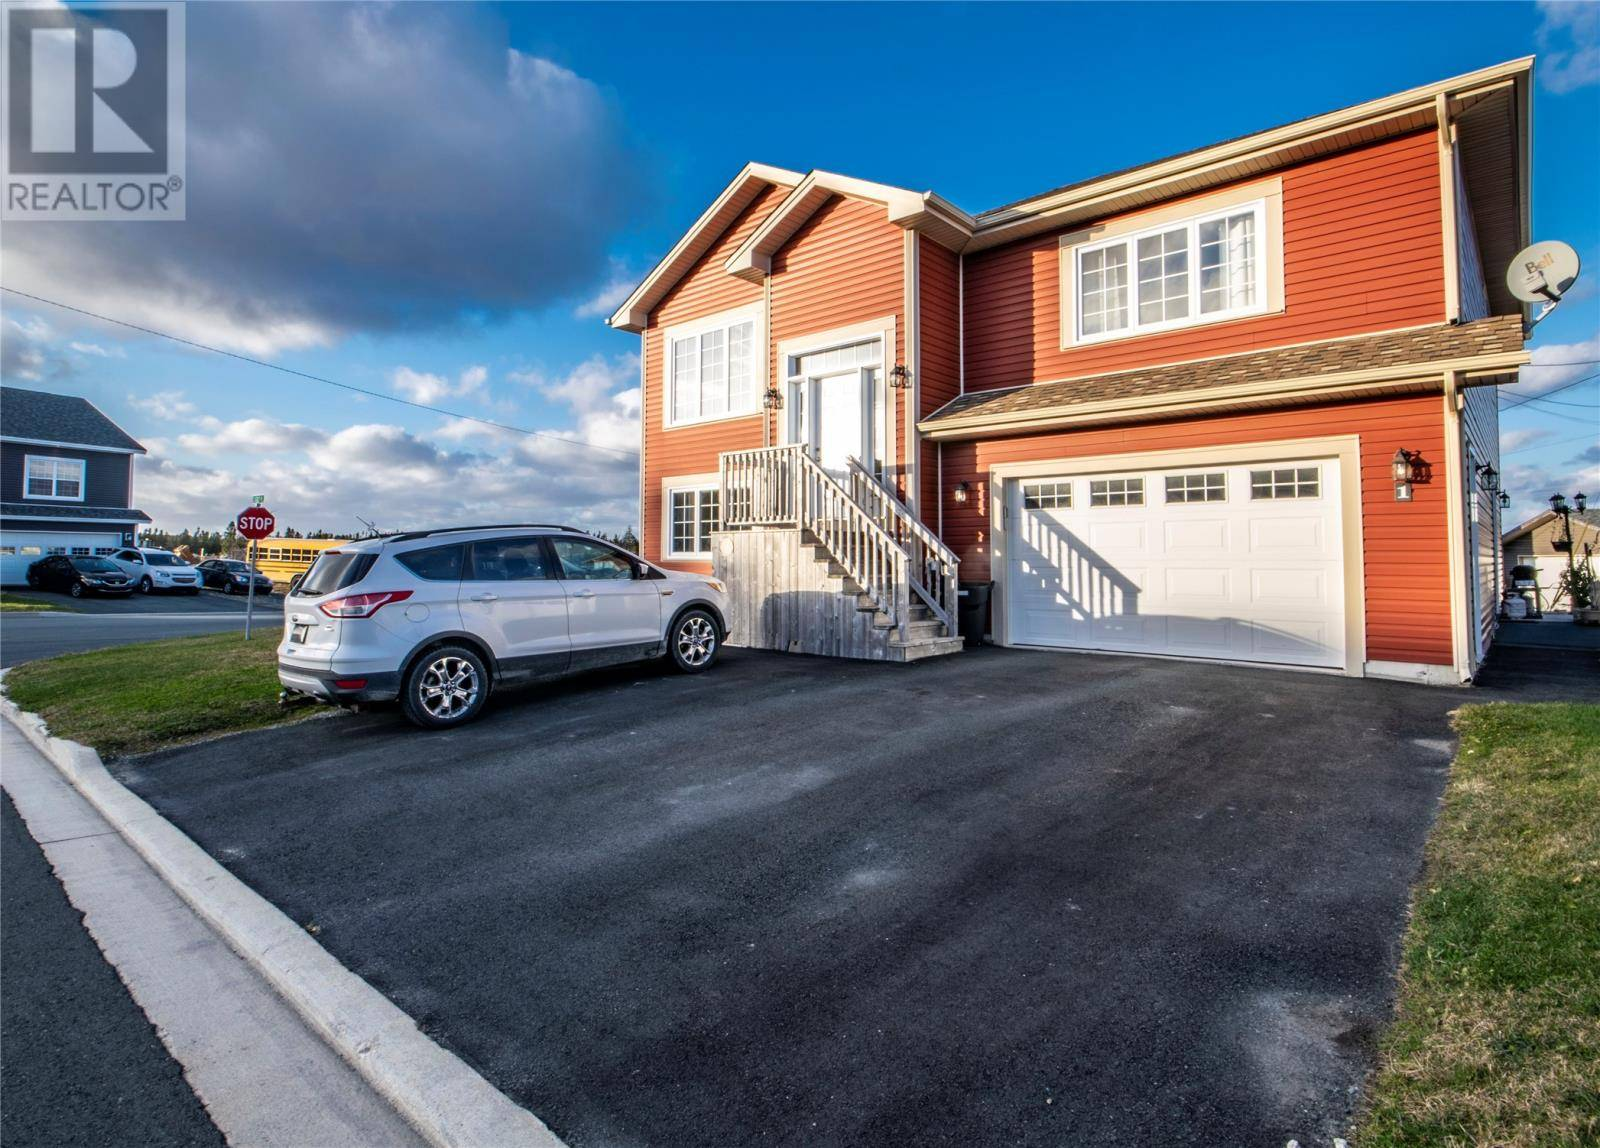 House for sale at 1 Legacy Pl St. John's Newfoundland - MLS: 1207089